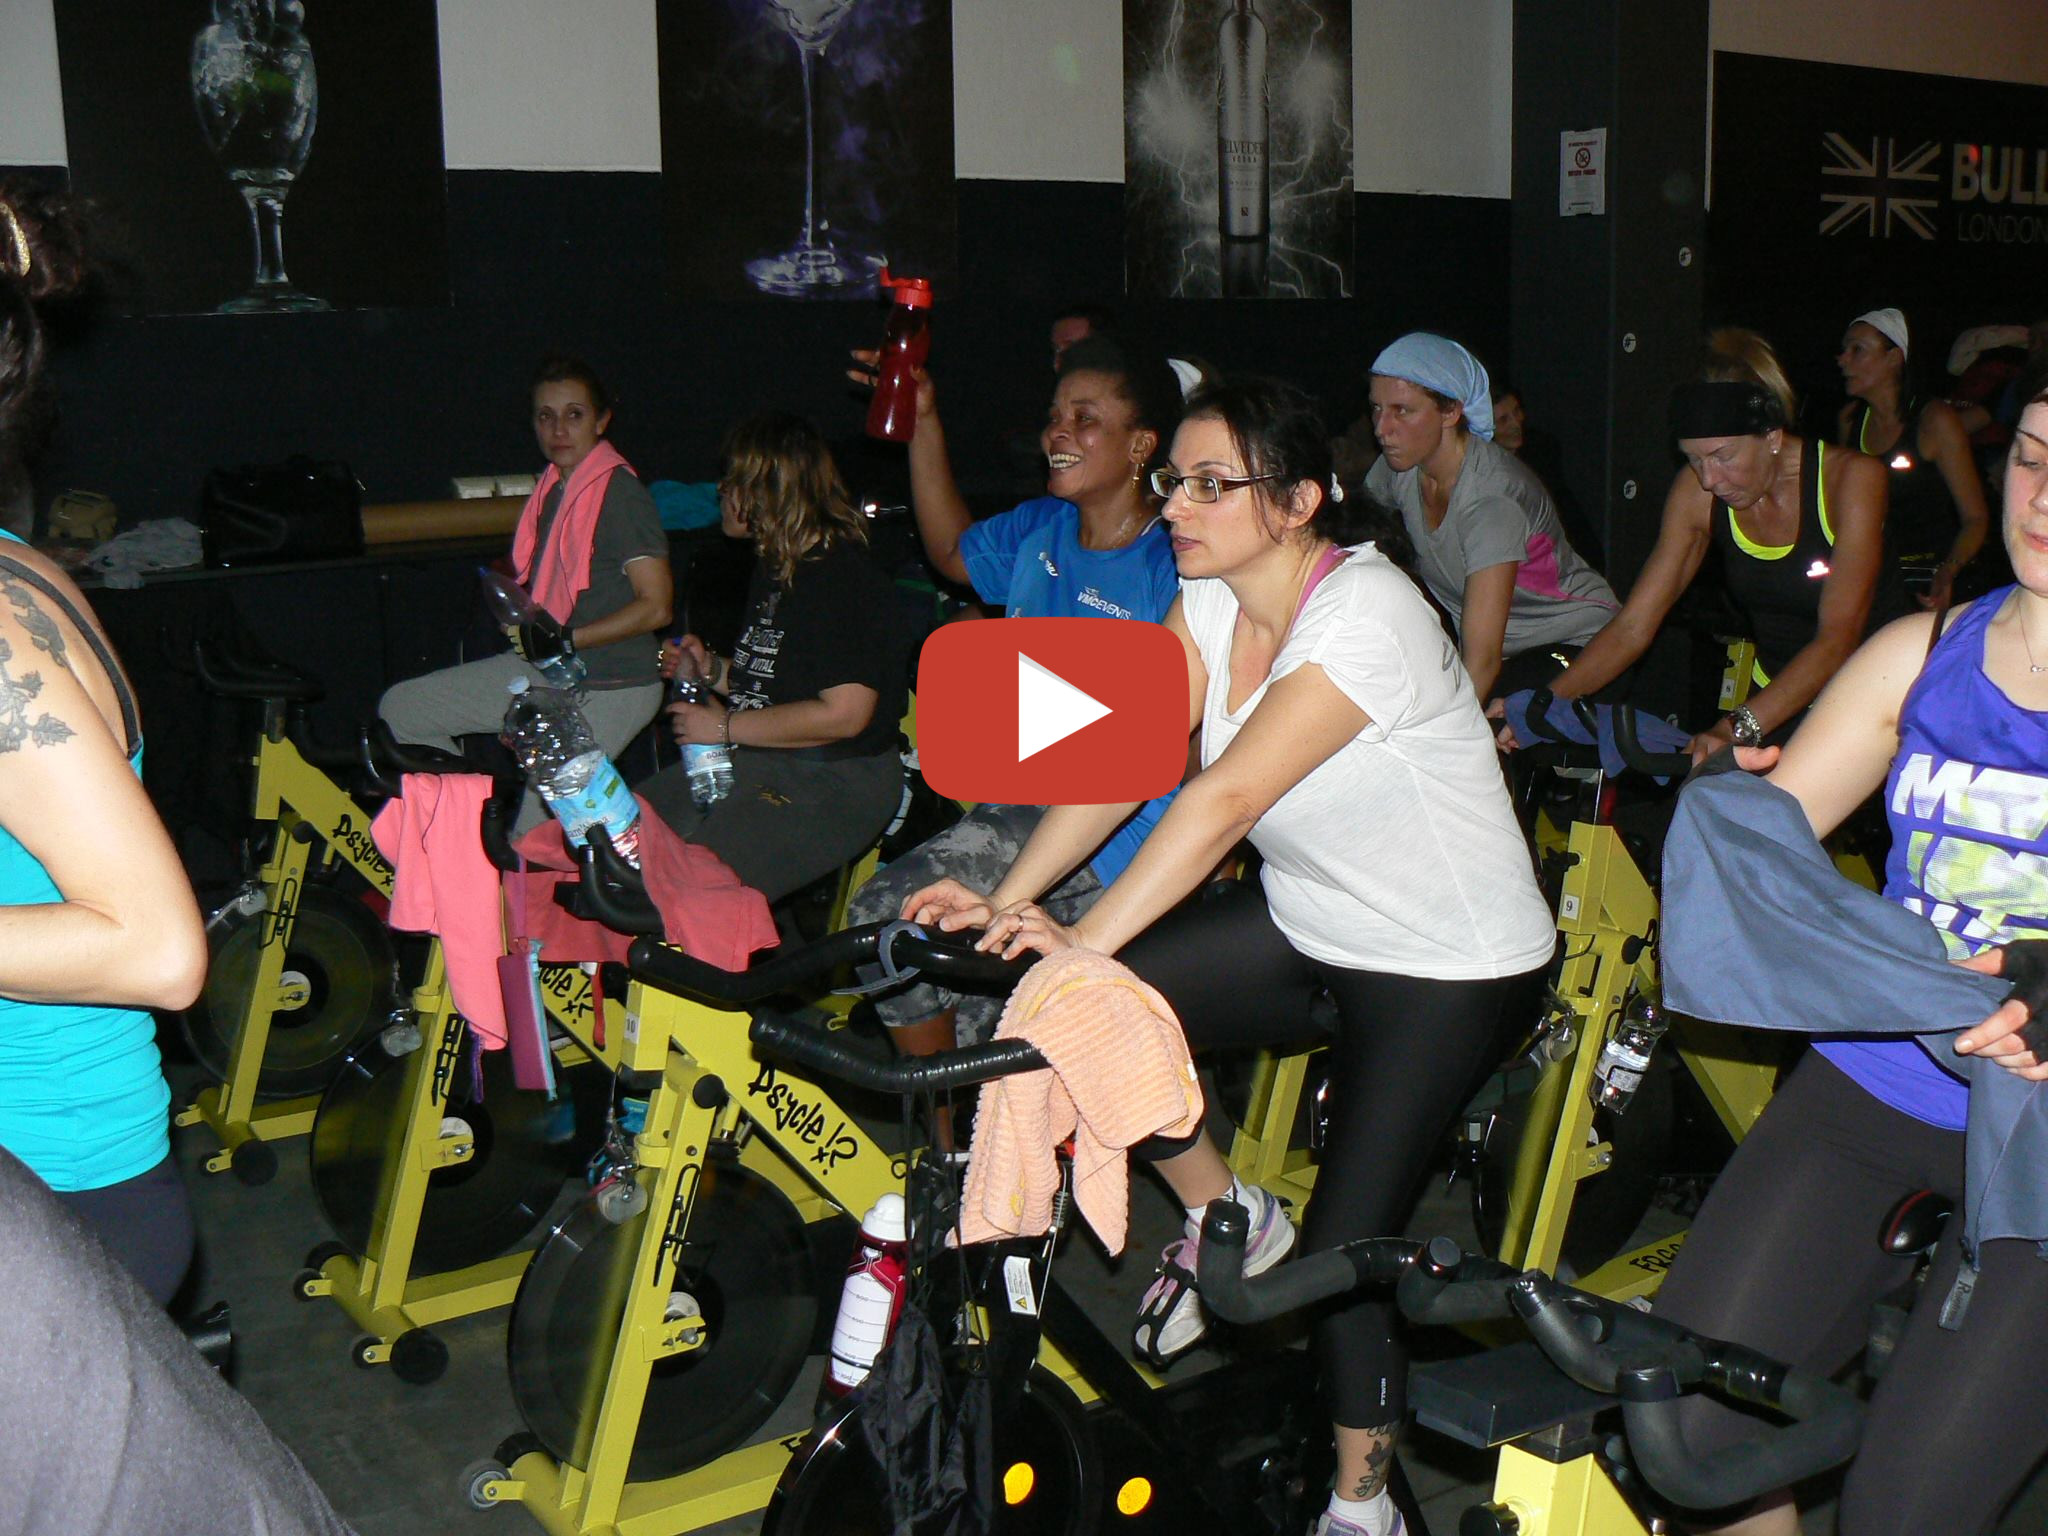 spinning indoor cycling lezione fartleck evento hashtag